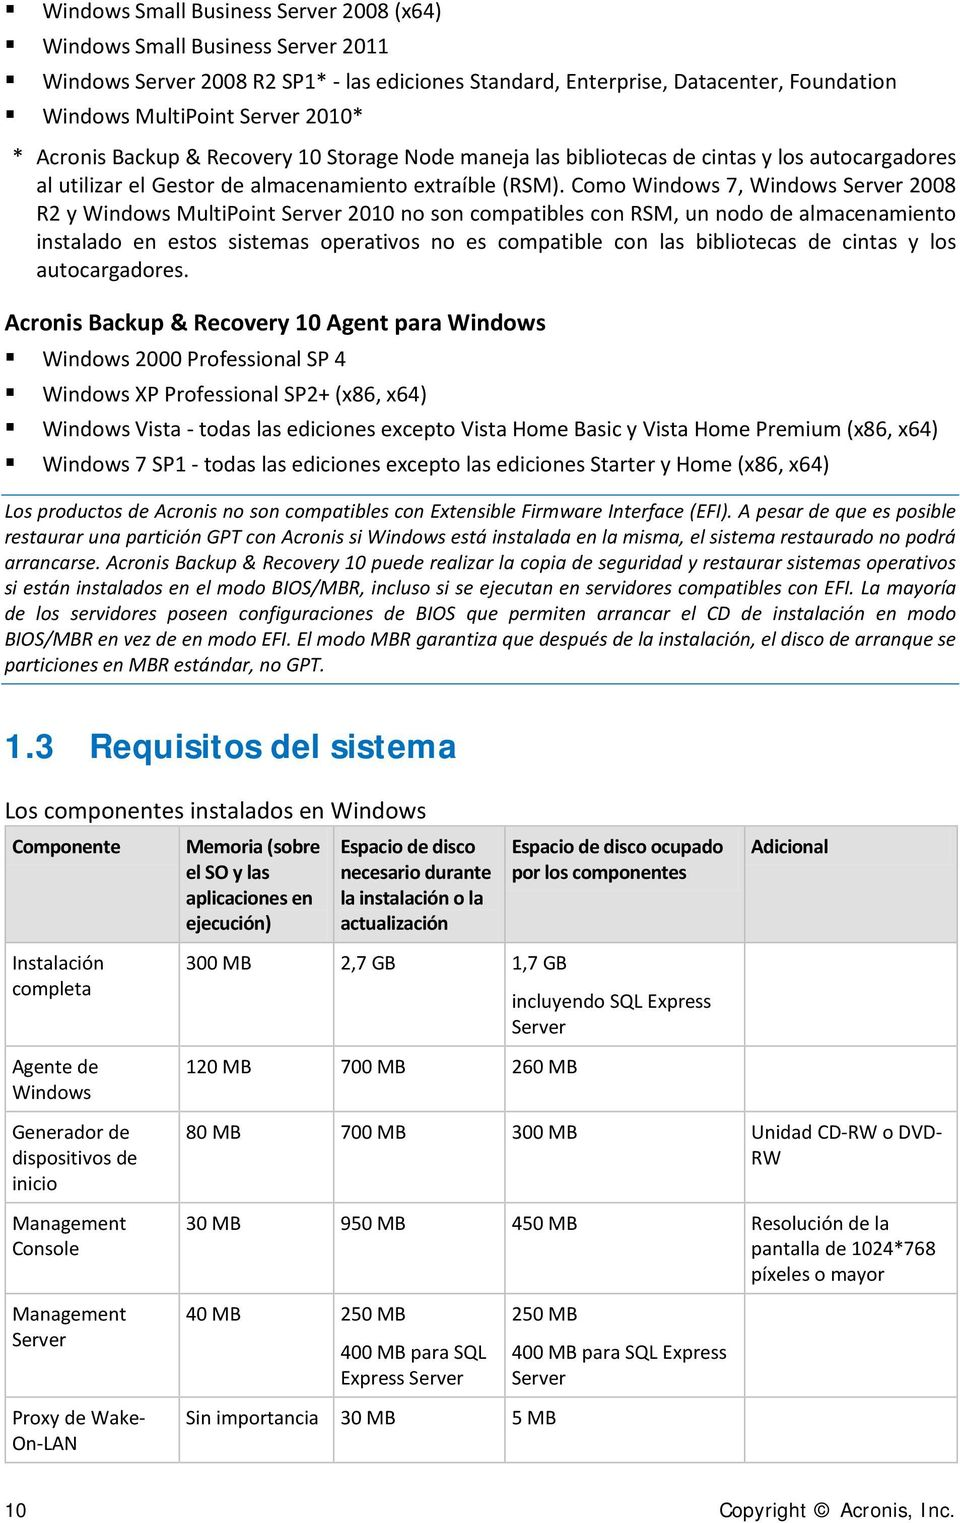 Como Windows 7, Windows Server 2008 R2 y Windows MultiPoint Server 2010 no son compatibles con RSM, un nodo de almacenamiento instalado en estos sistemas operativos no es compatible con las